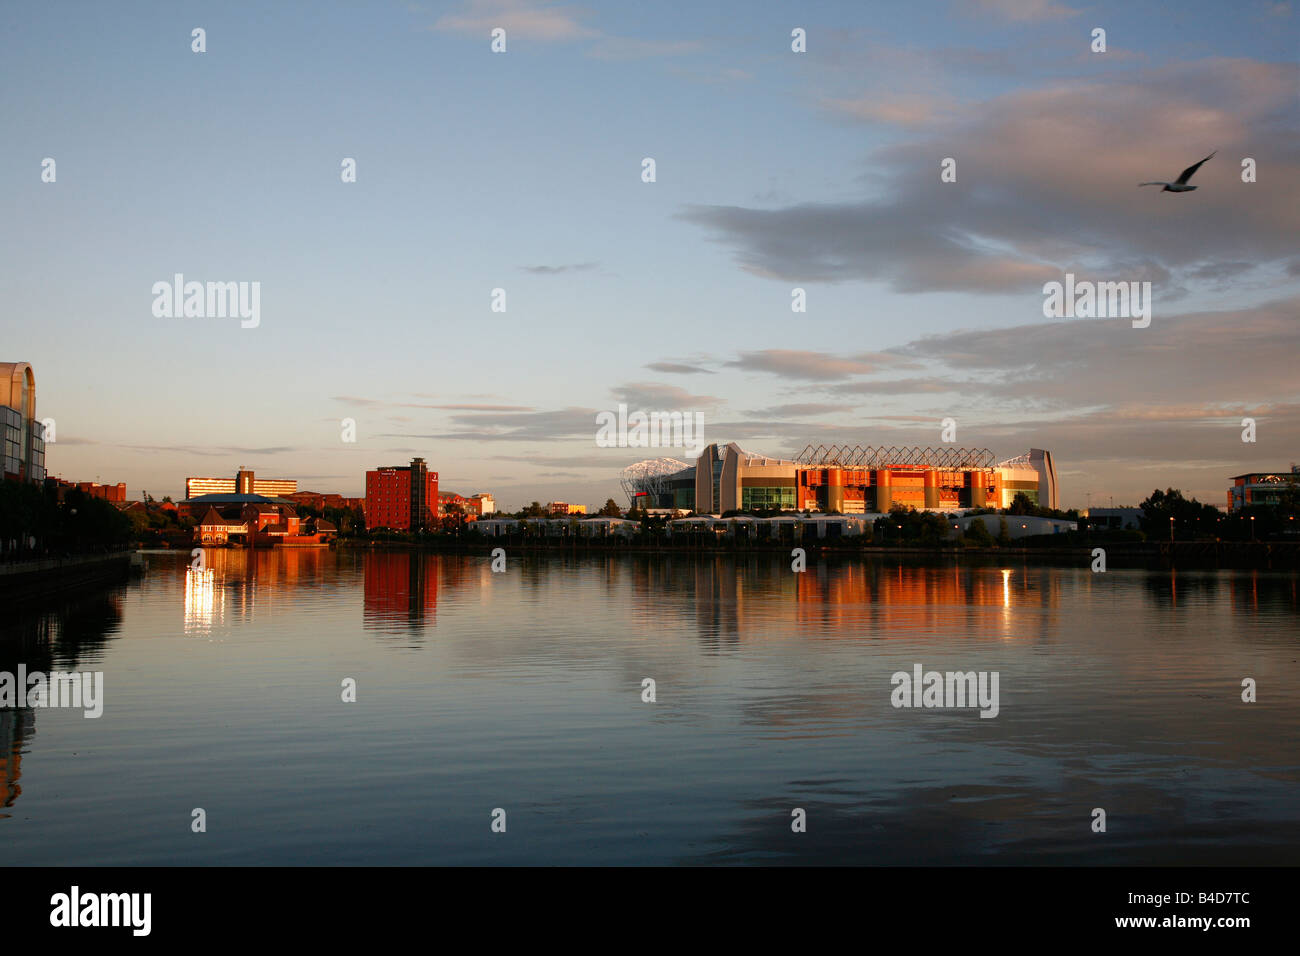 Aug 2008 - The Old Trafford Stadium Salford Quays Manchester England UK - Stock Image